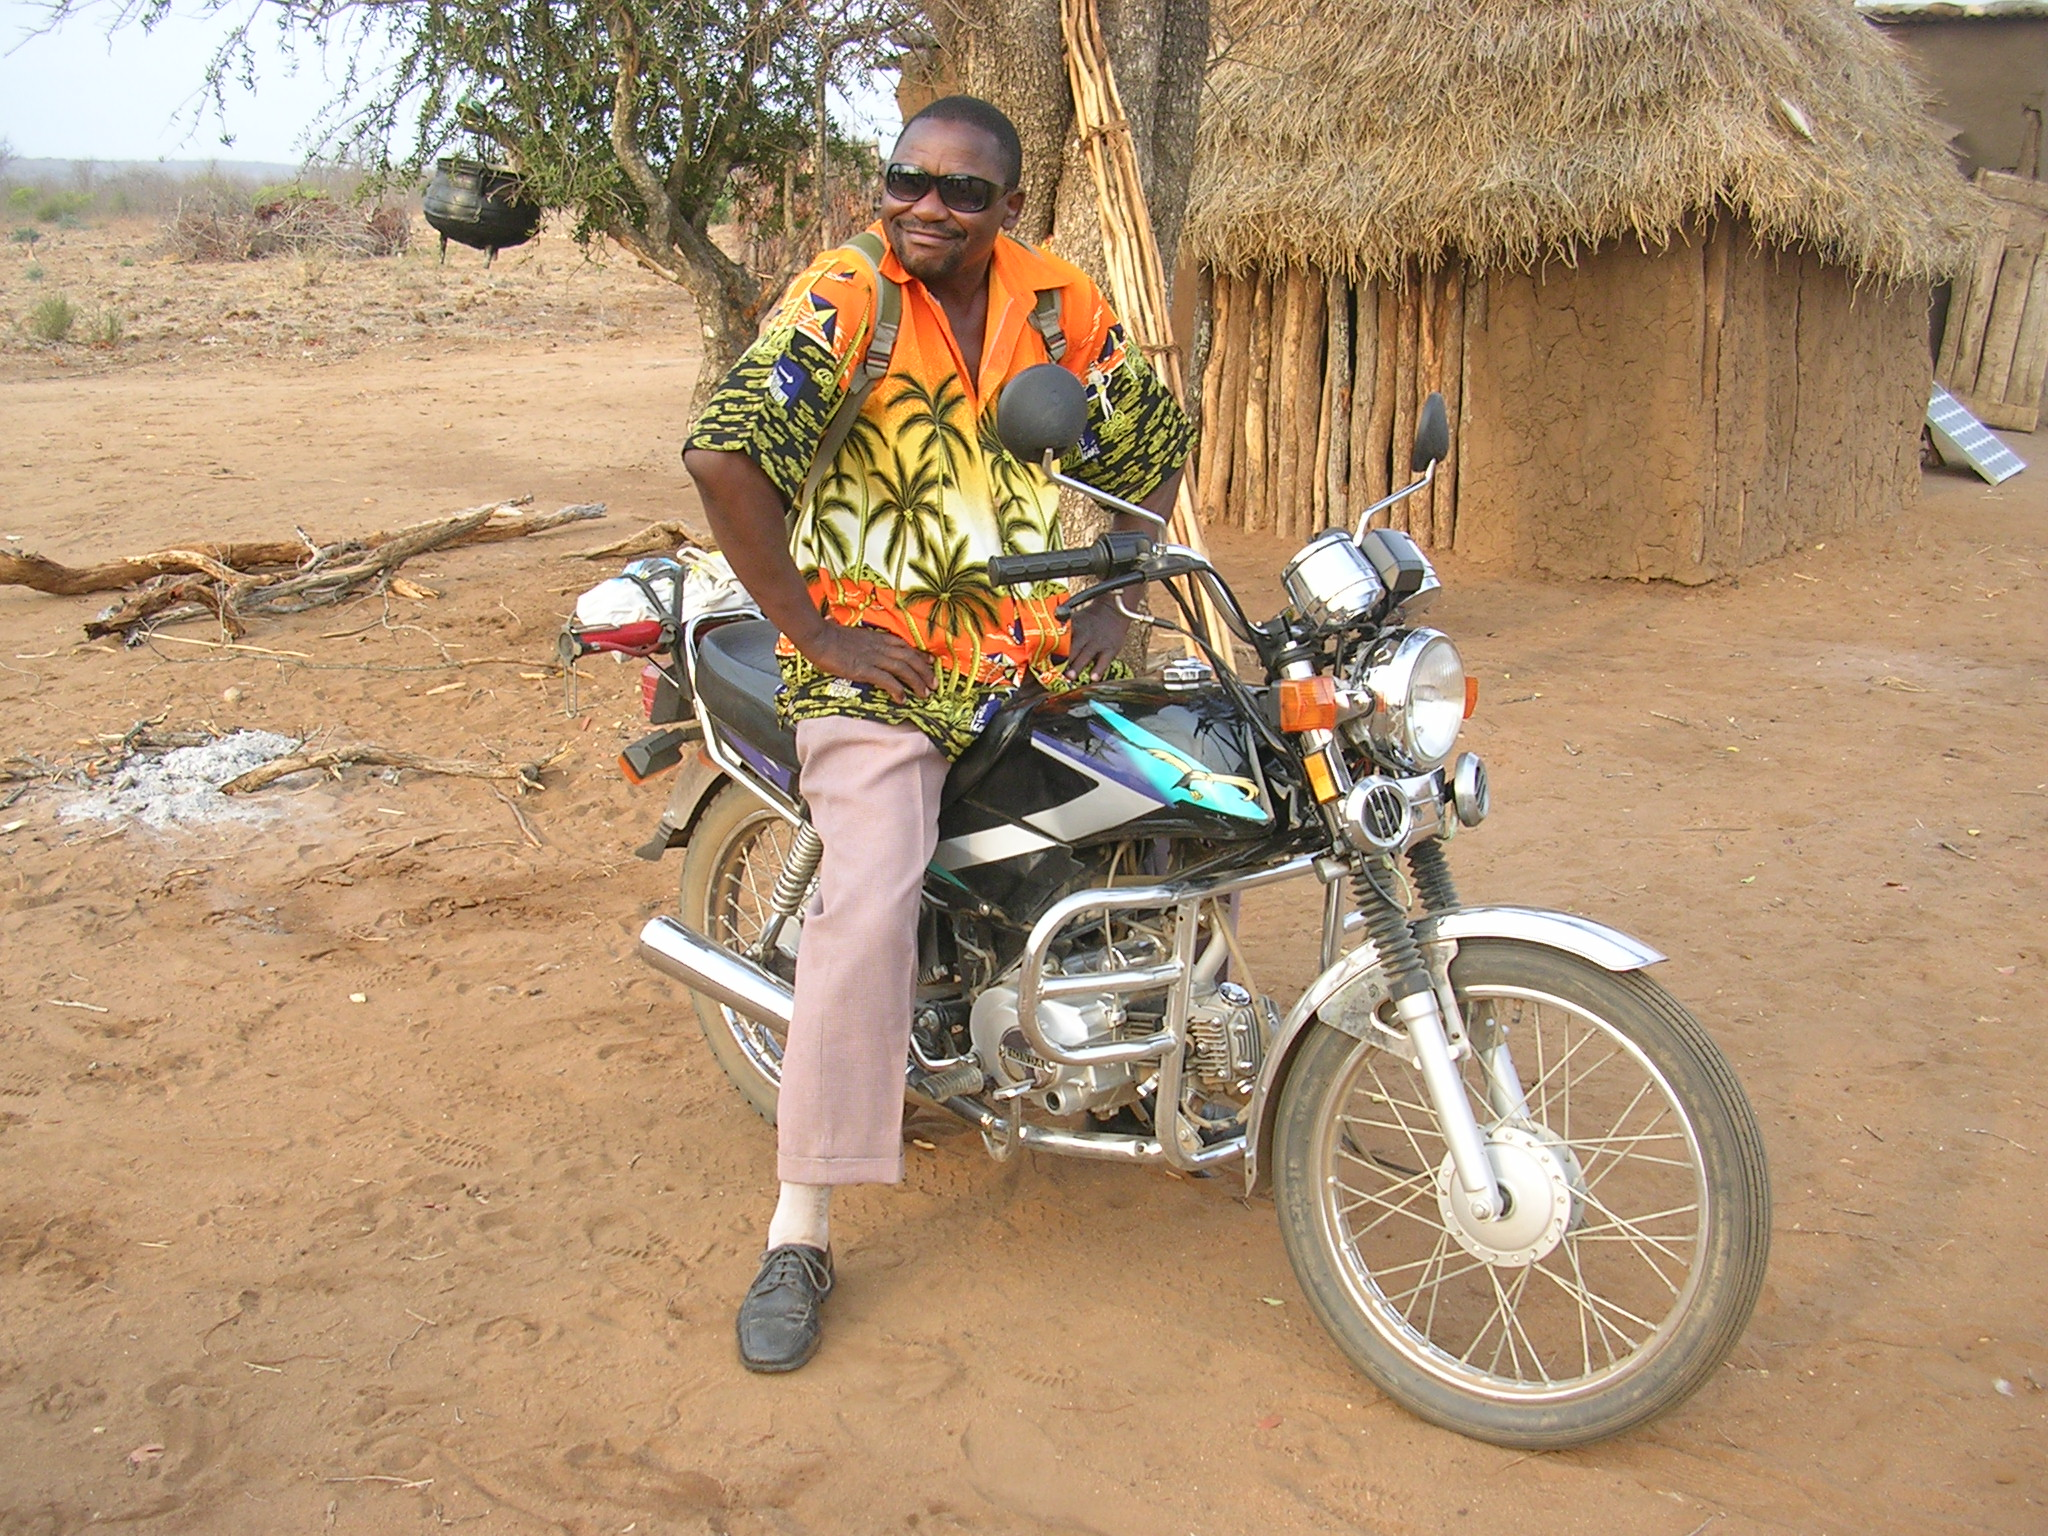 Armando and his motorcycle. As soon as he received the cash compensation for resettlement, he bought this motorcycle.